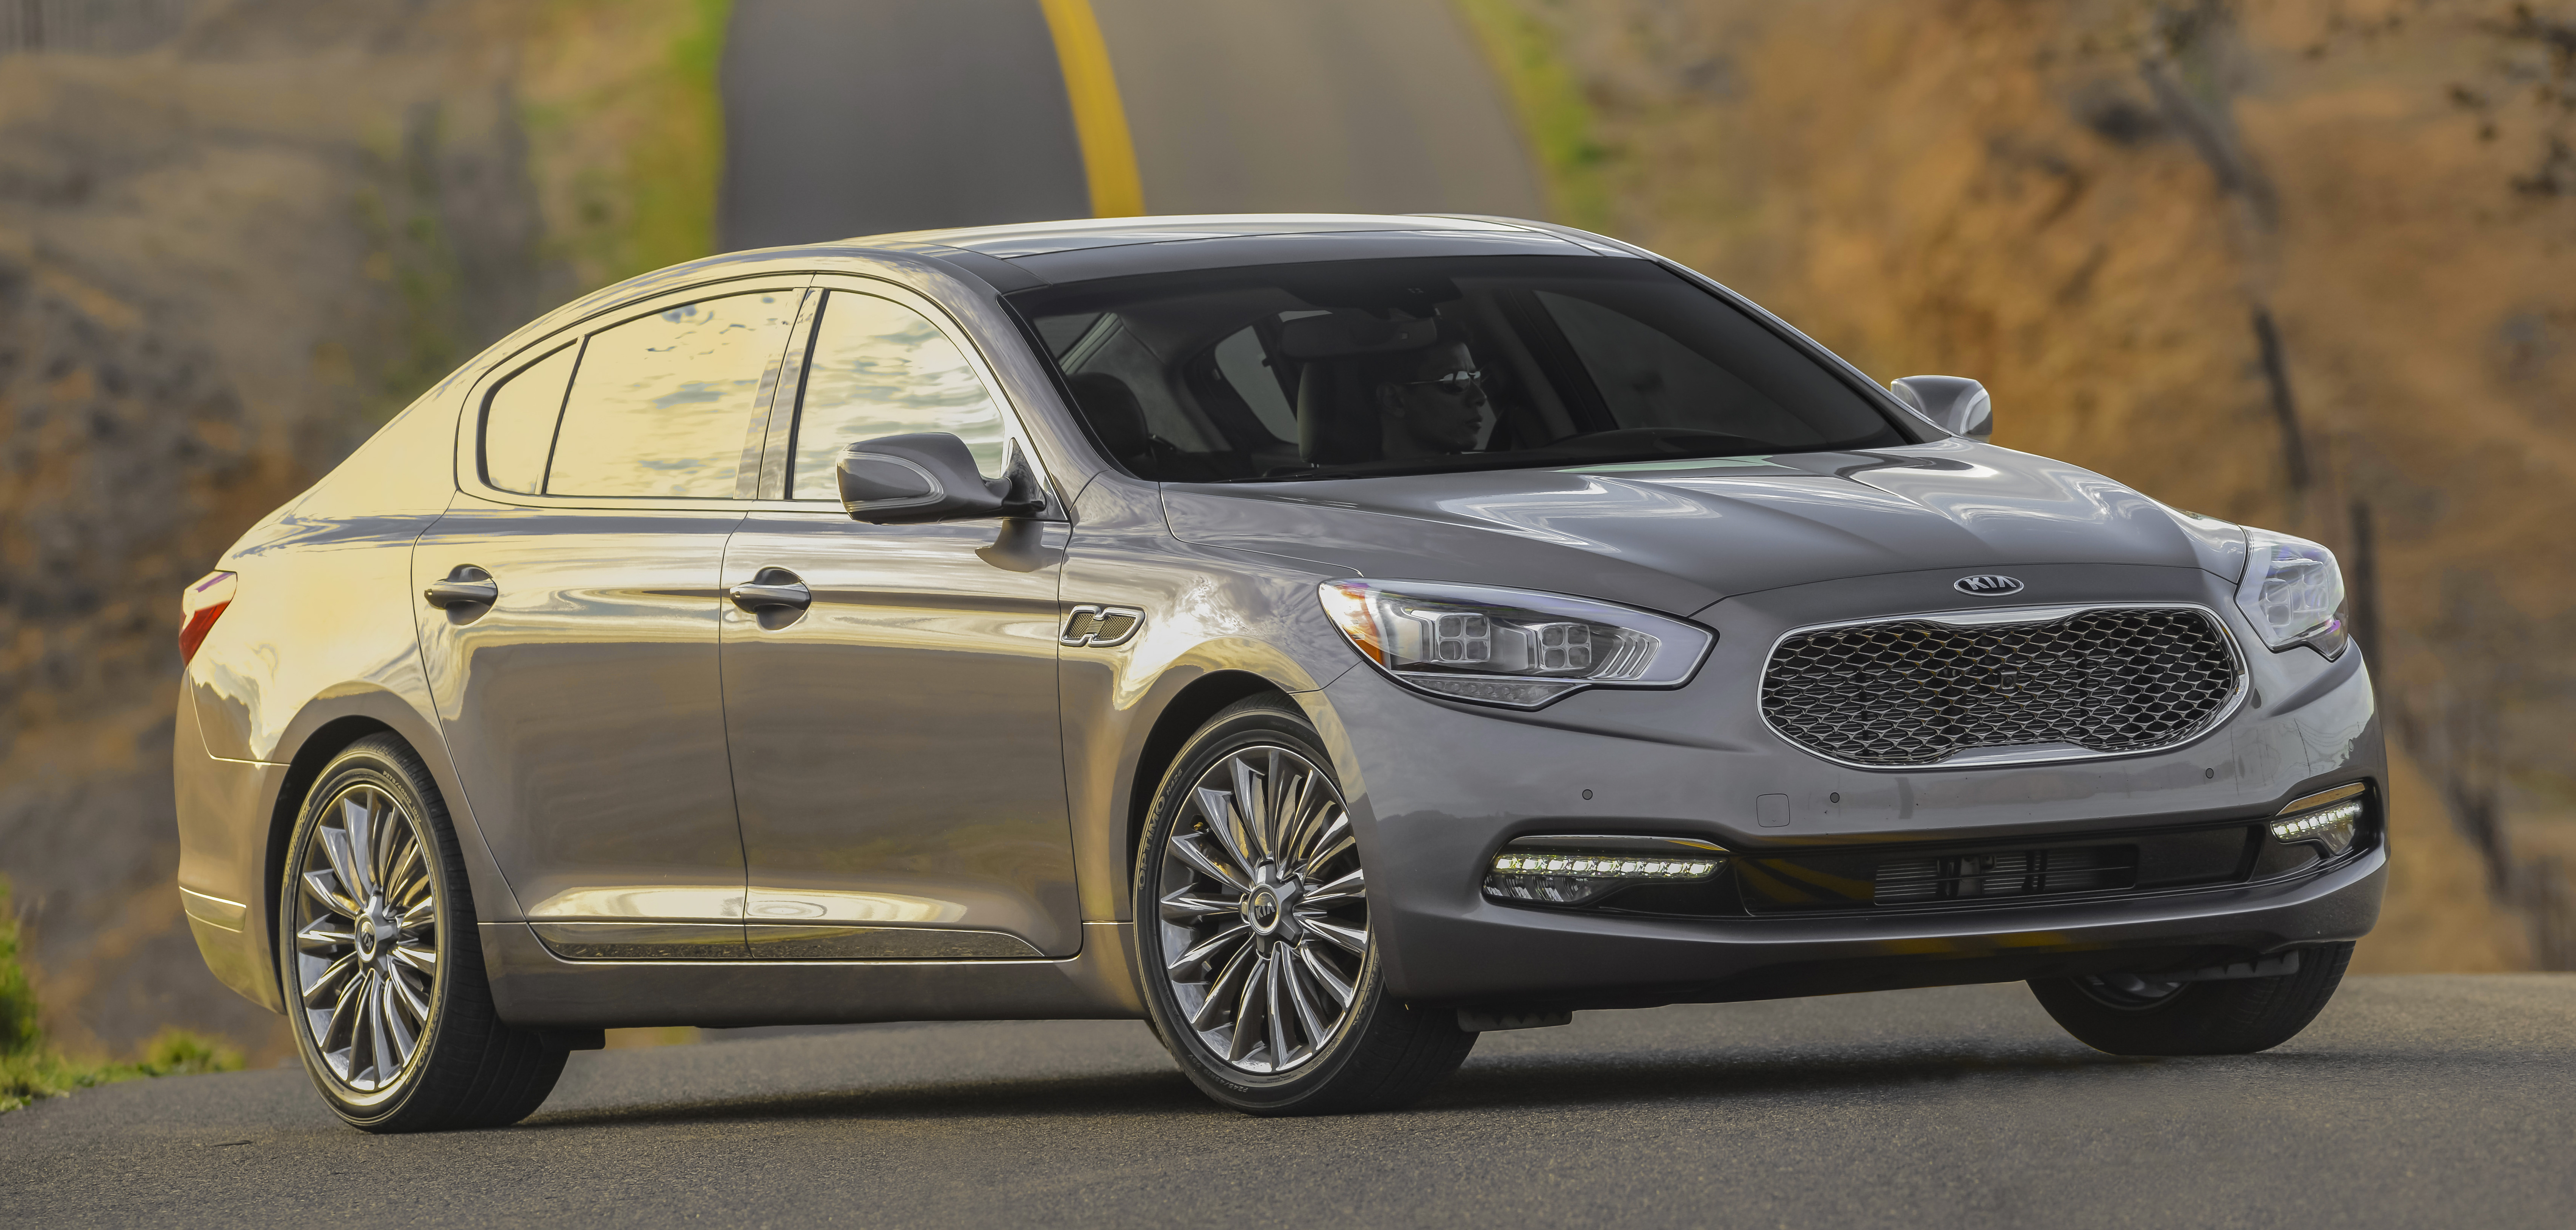 Luxury Family Vehicles: Kia 900: A Luxury Sedan For Value Shoppers